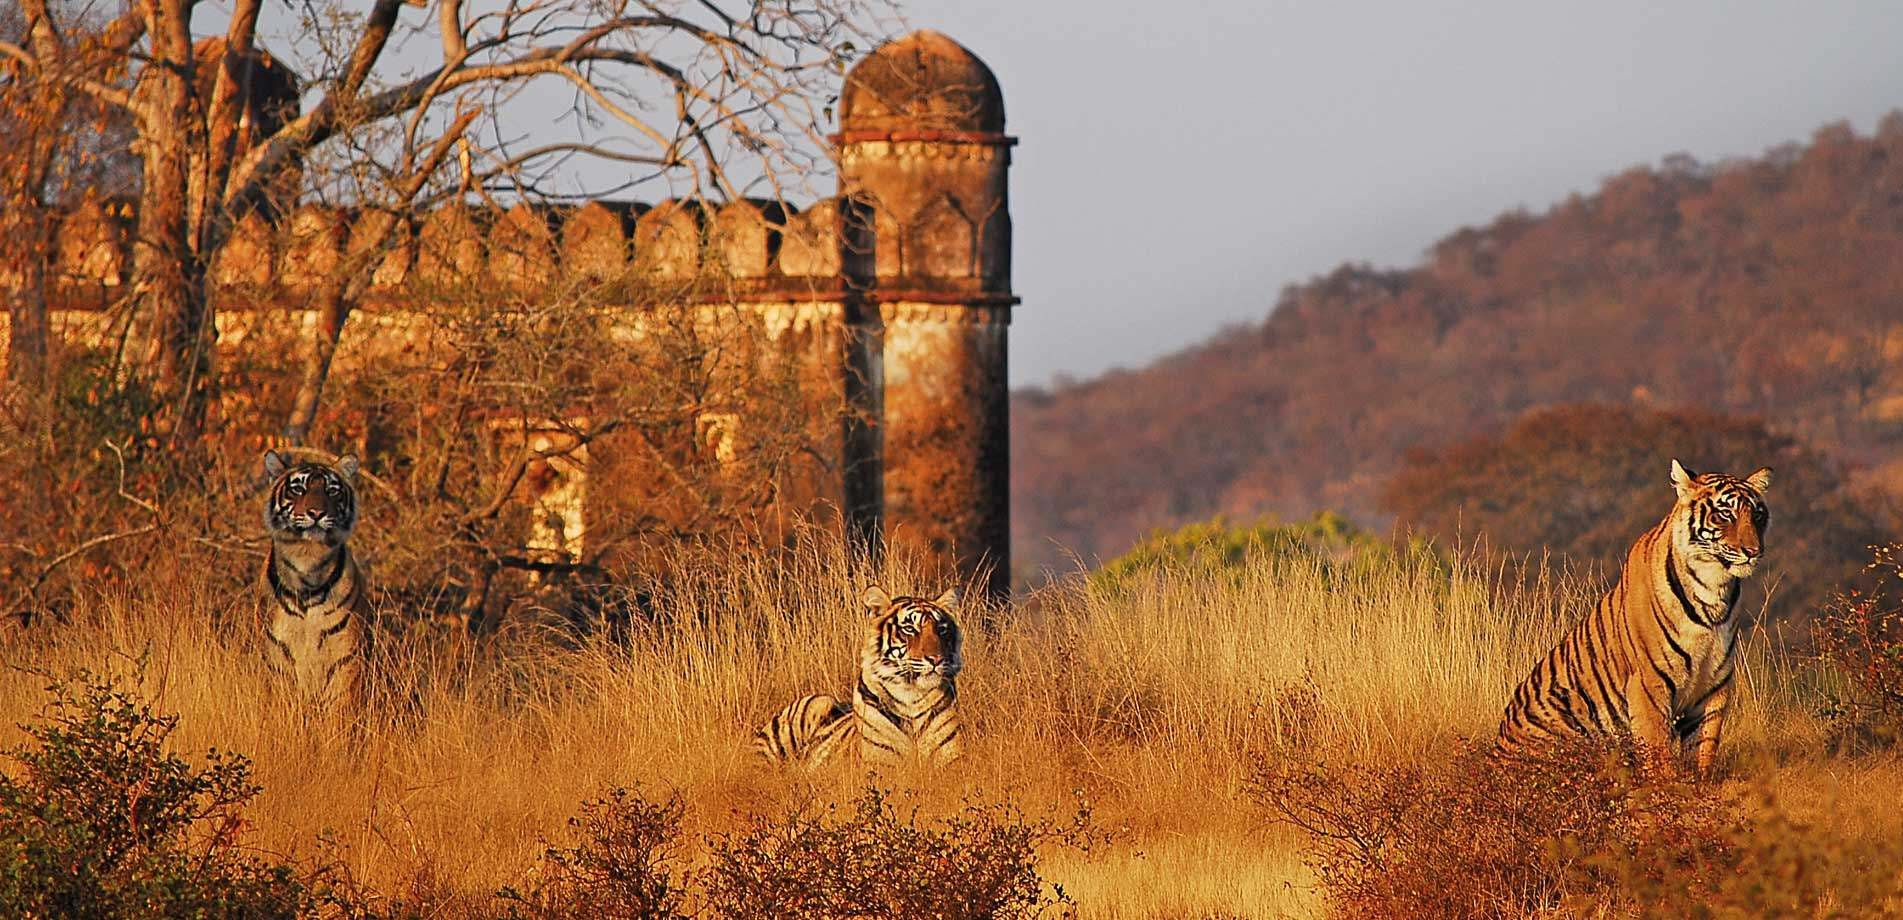 Ranthambore National Park Sher Bagh